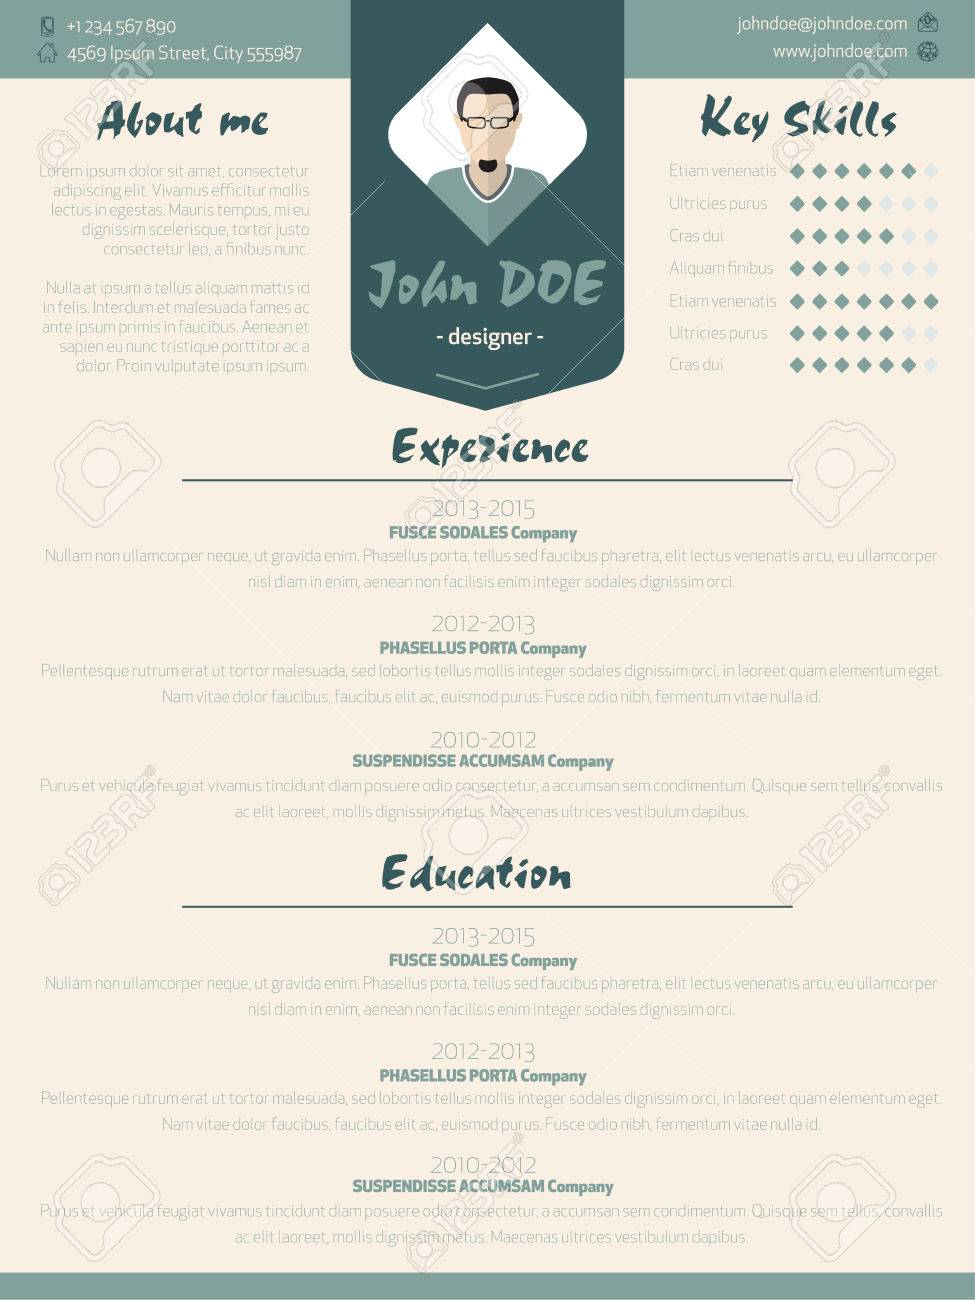 cool new modern resume cv curriculum vitae template design with design elements stock vector 41131591 - Elements Of A Resume